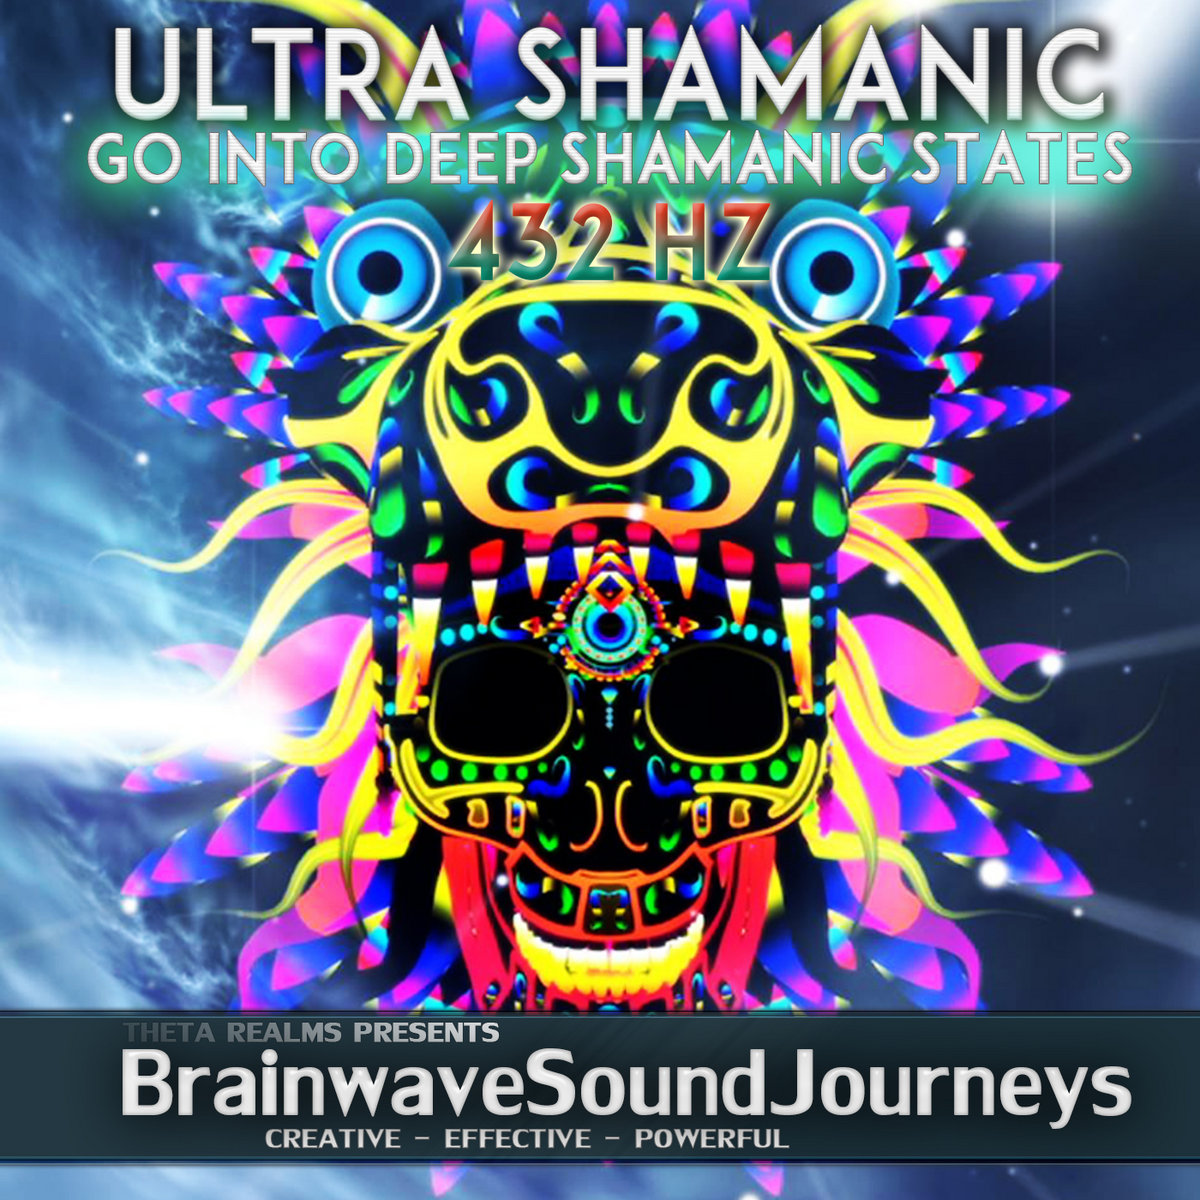 ULTRA SHAMANIC MEDITATION ♊ GO INTO A DEEP TRANCE | 6 3 HZ | Ultra